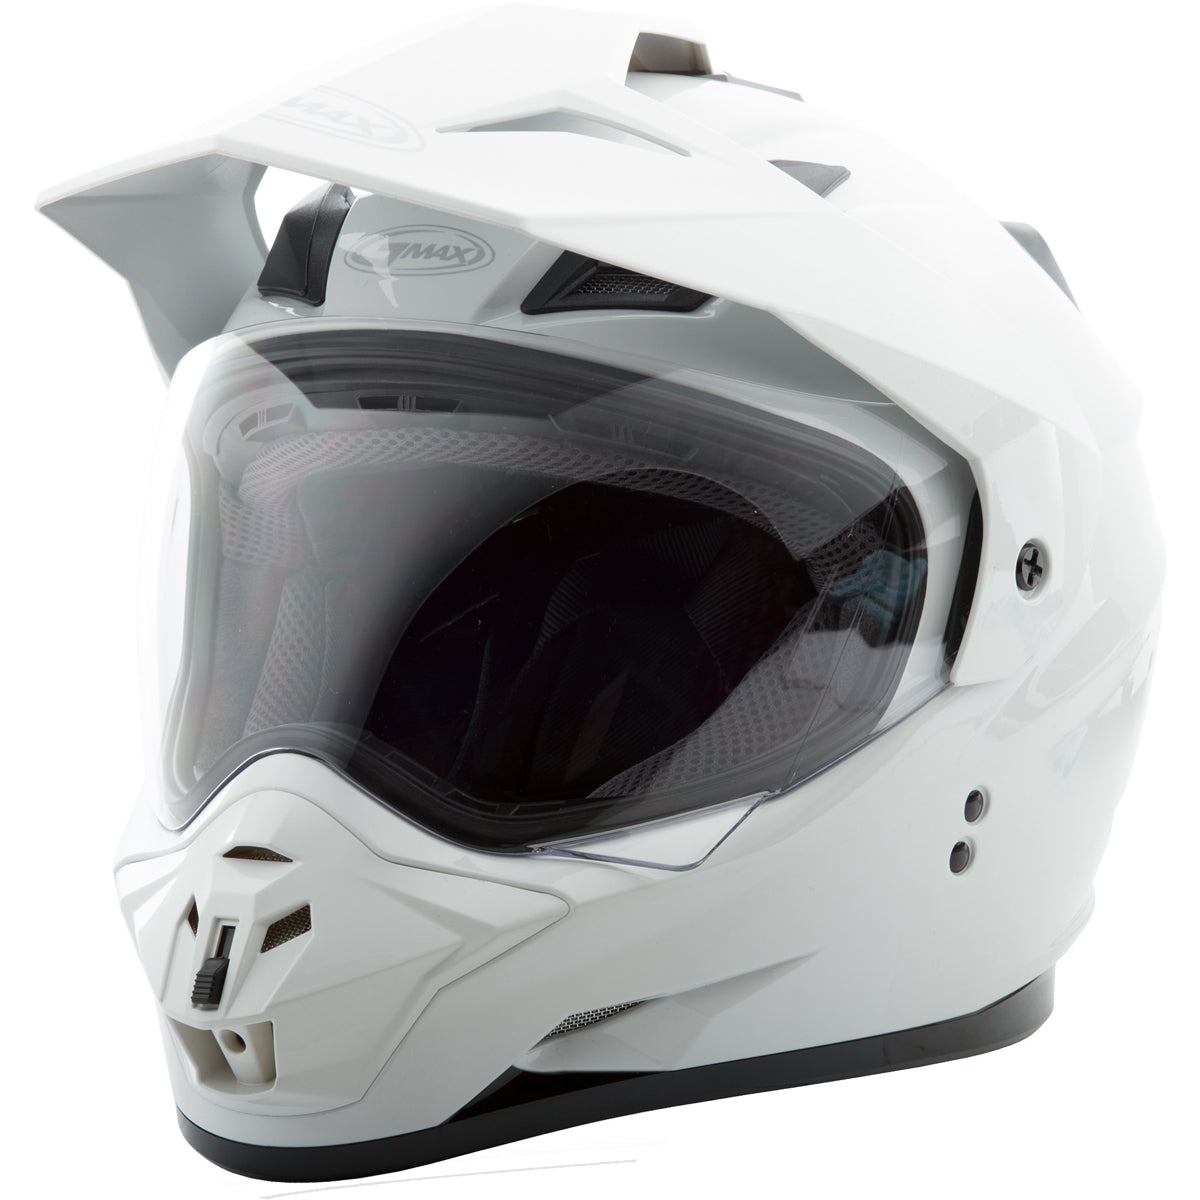 GMAX GM11 Solid Men's Off-Road Helmets (New - Without Tags) - White